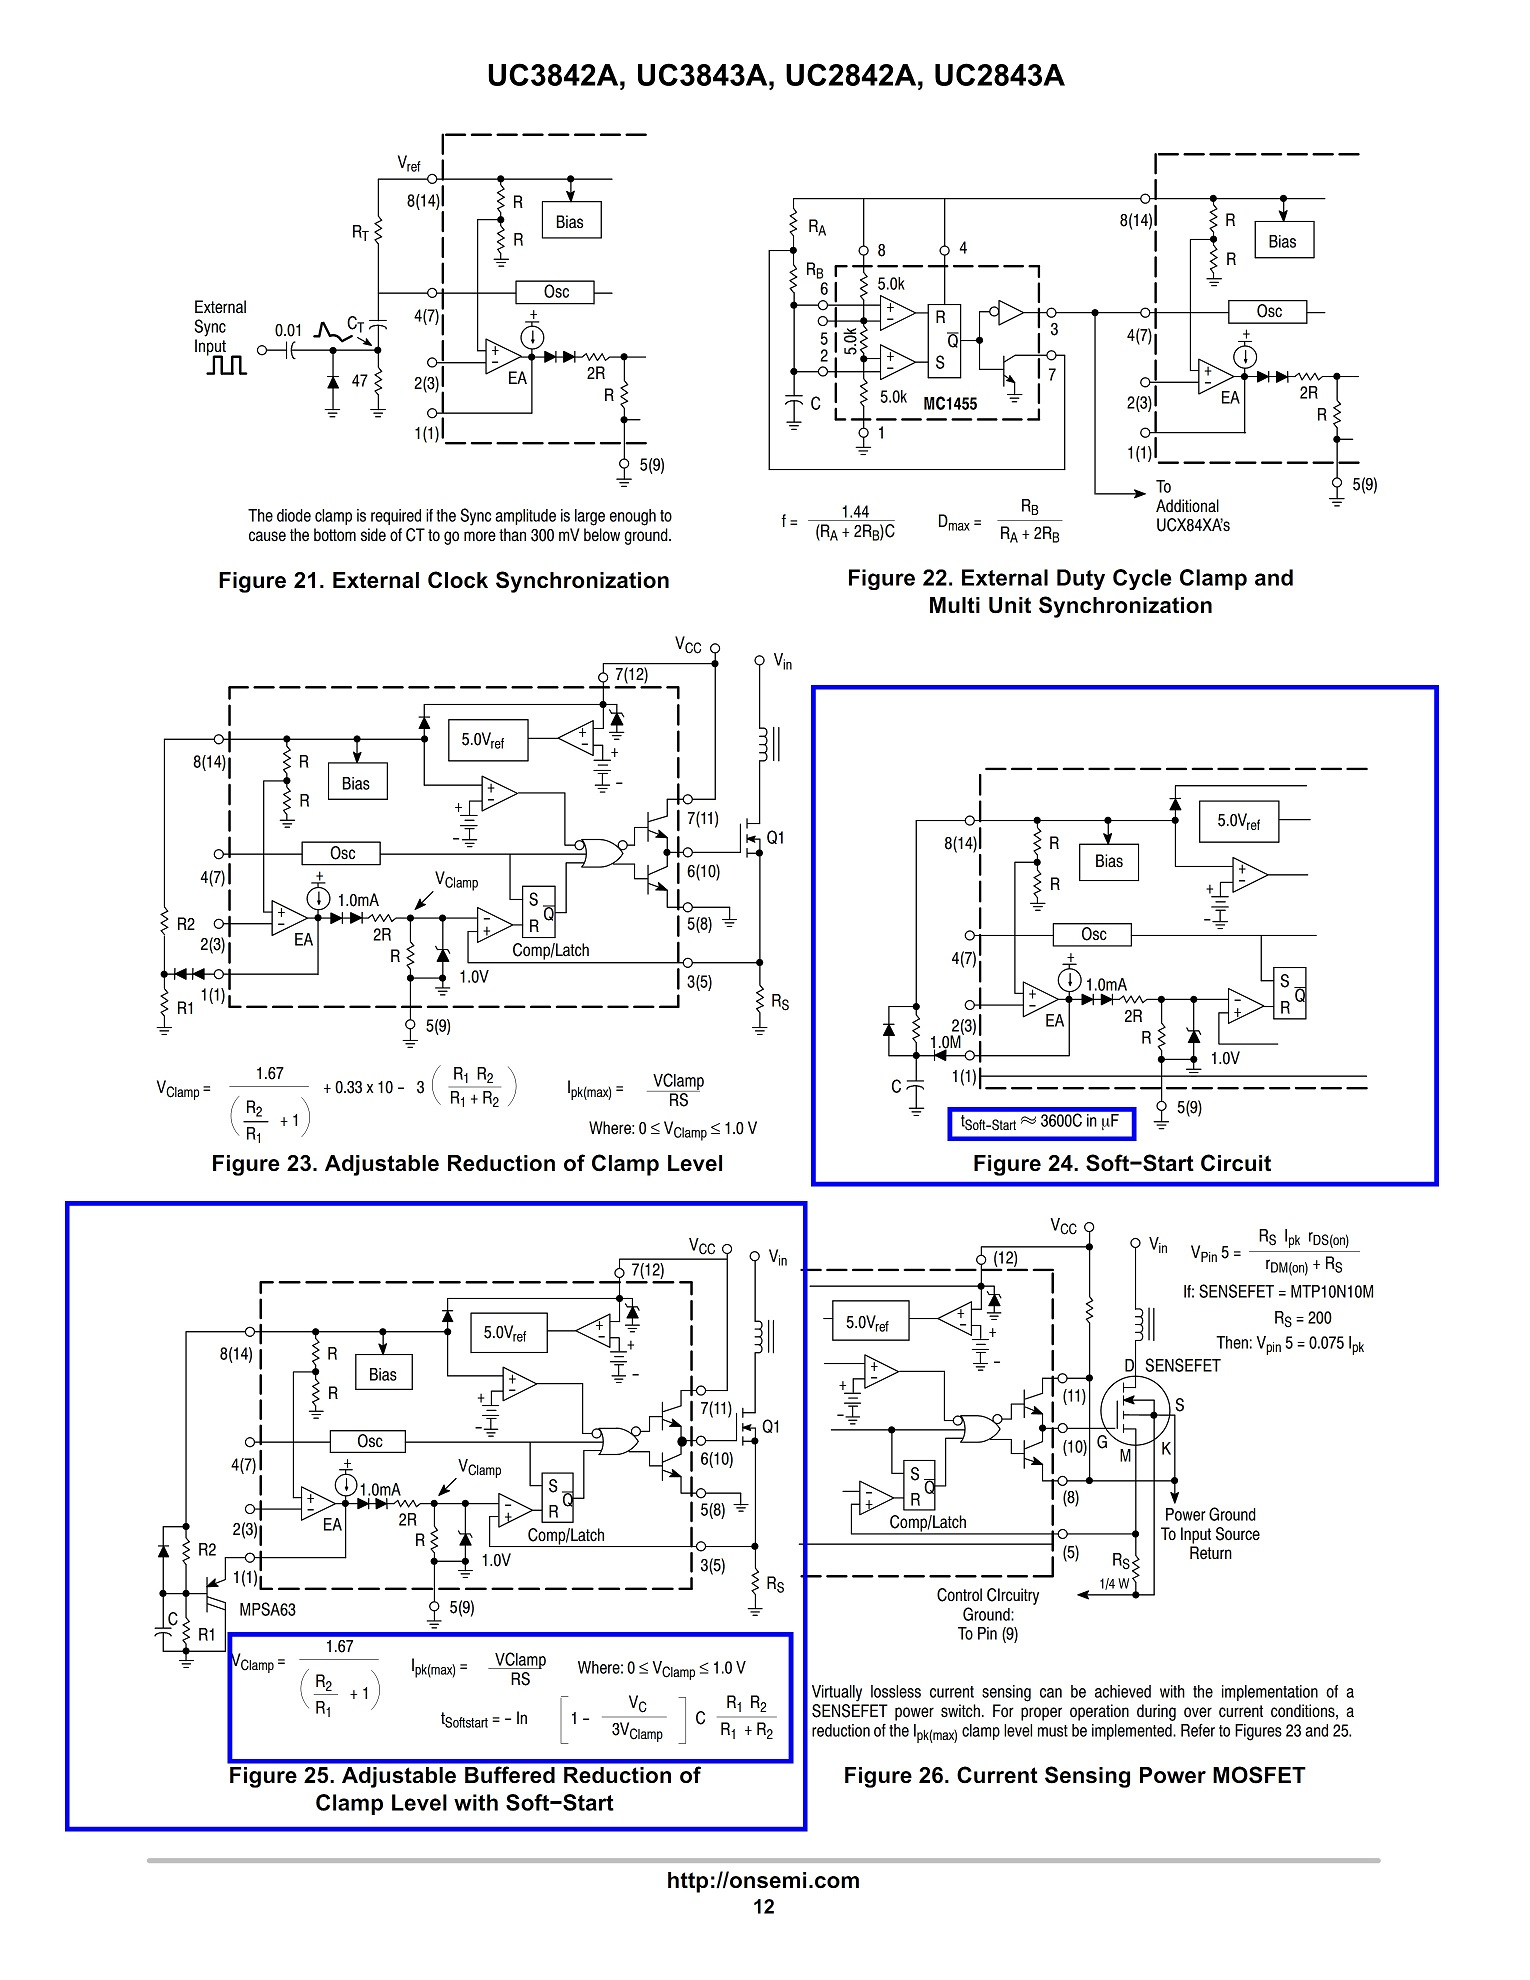 Resolved Uc3843 Soft Start Time Precise Calculation Power Circuit On Capacitor Charging Discharging Diagram By The Way I Think A Mosfet May Replace Pnp Transistor But Its Threshold Voltage Is Generally Higher Than Transistors Vbe For Example Pmn50xp Has